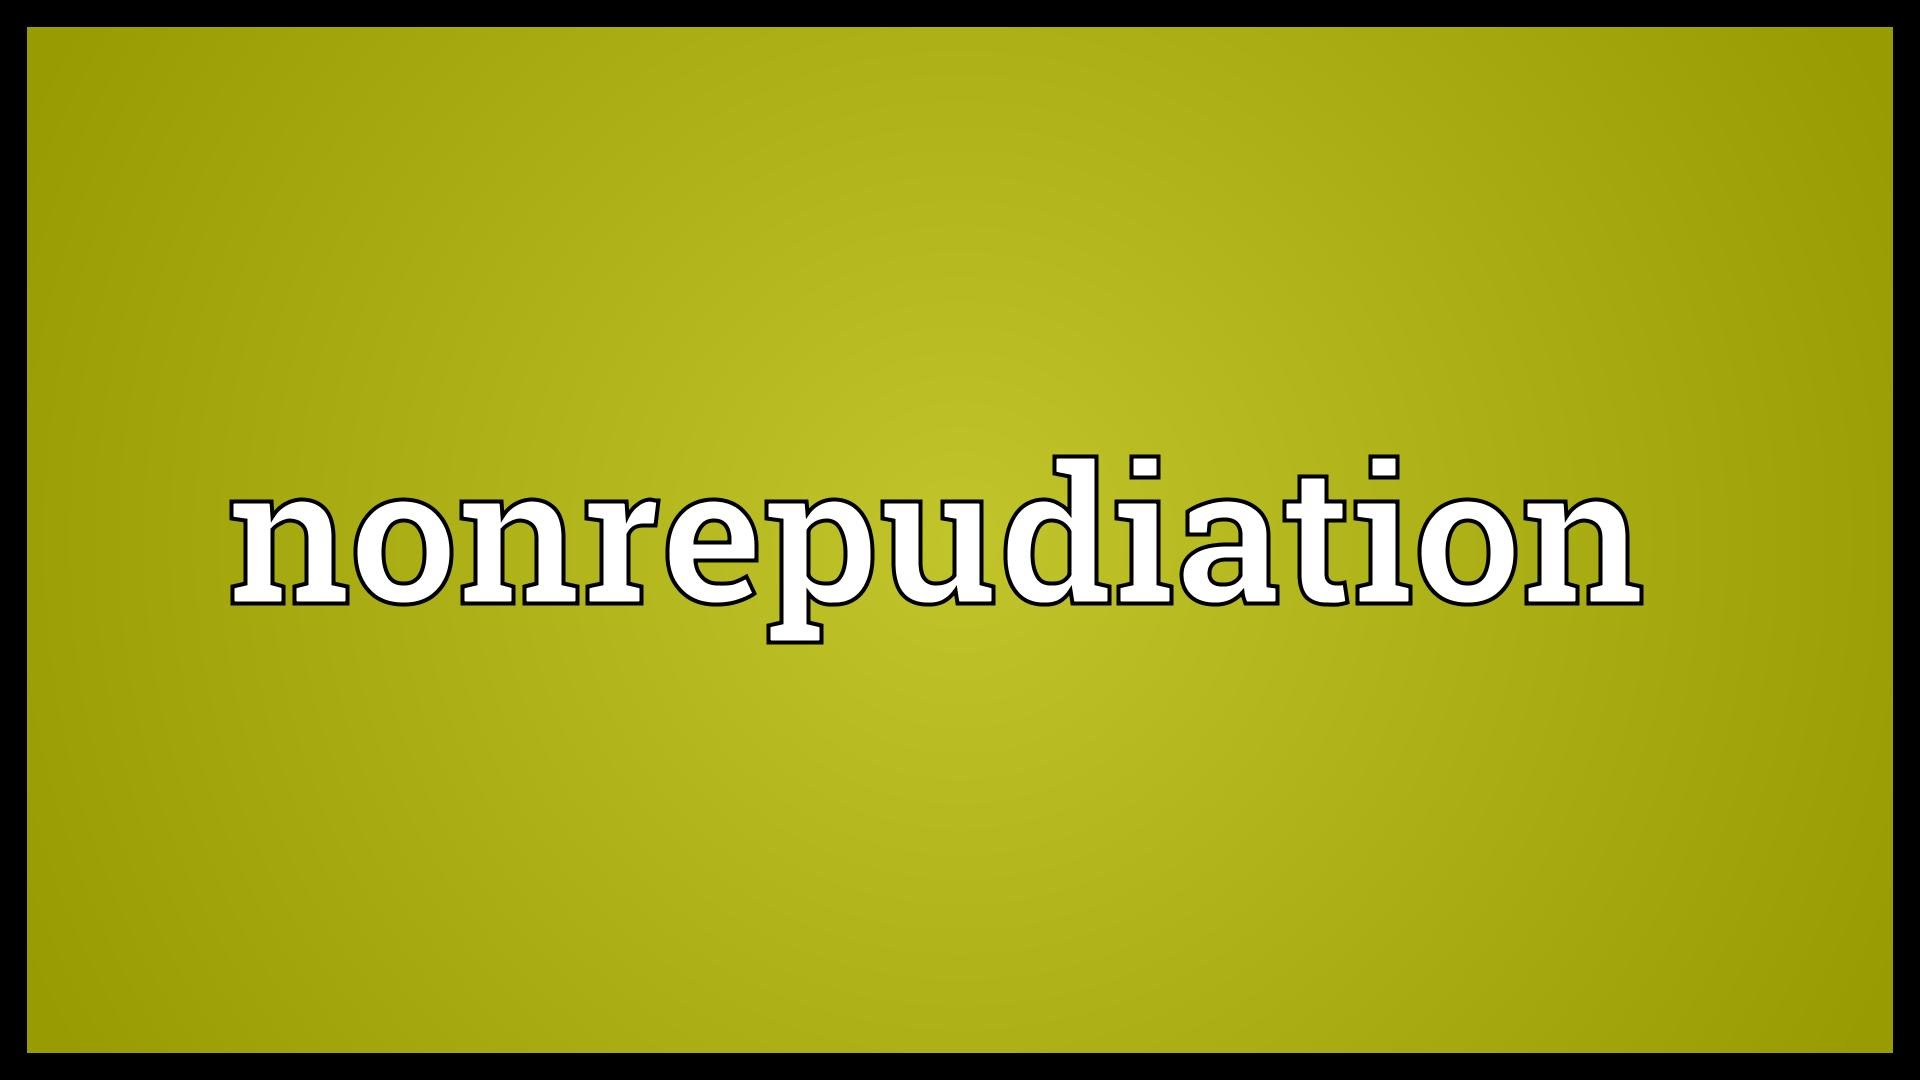 nonrepudiation-basics-for-internet-users